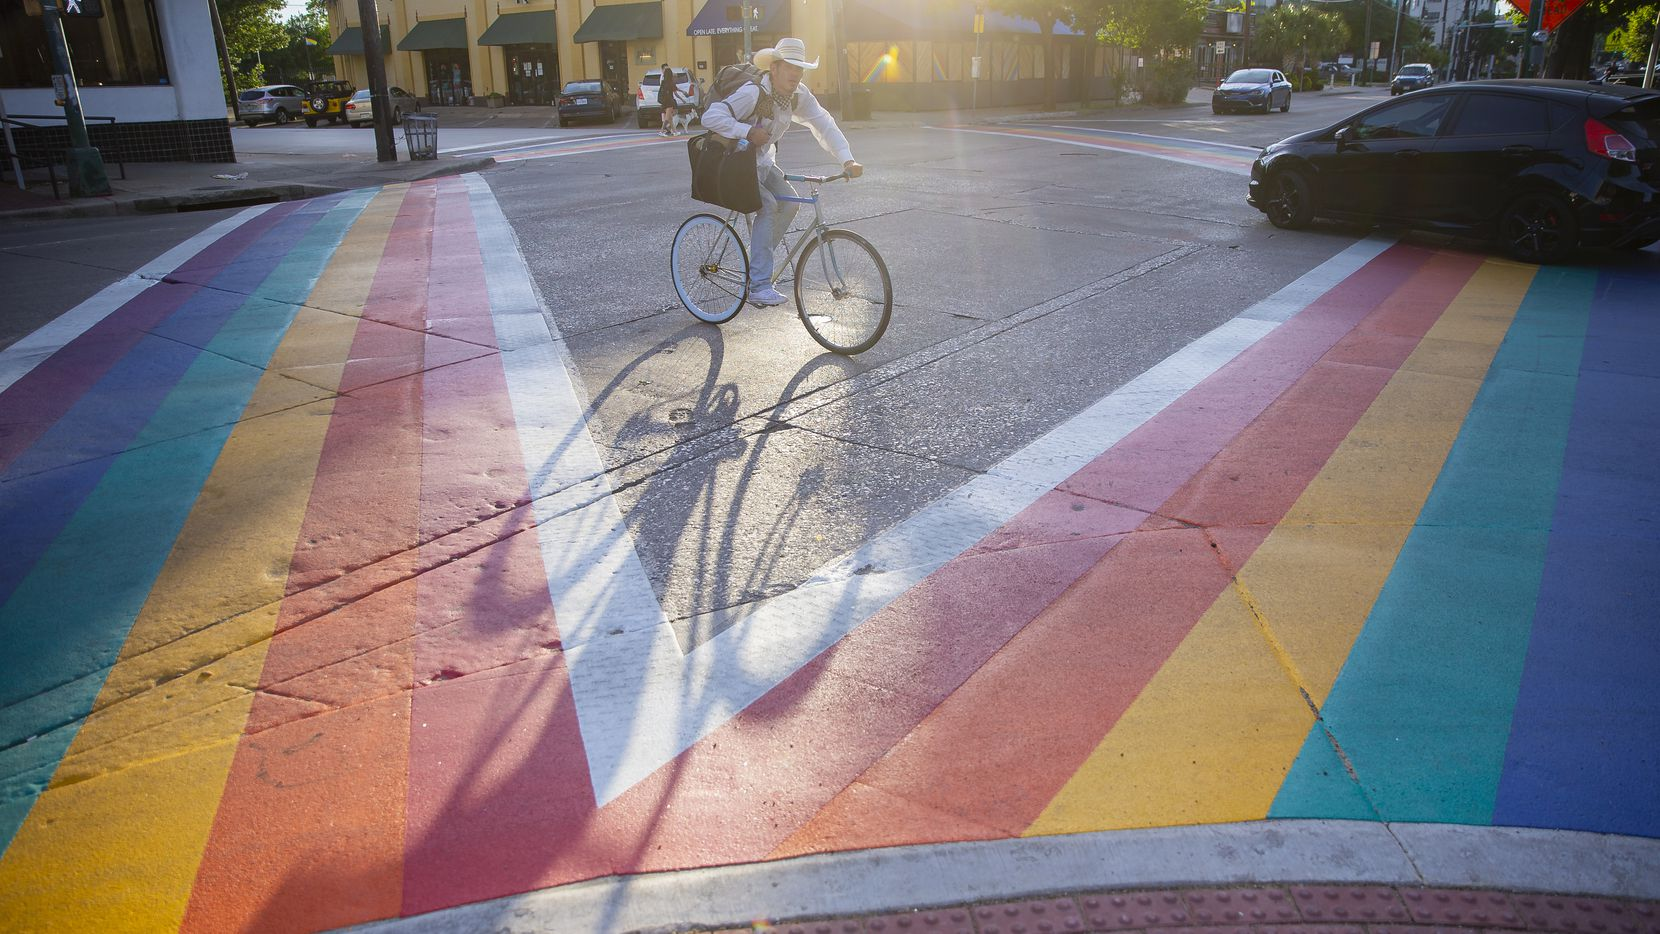 A cyclist bikes past the new rainbow crosswalks on Cedar Springs and Throckmorton St. in Oak Lawn on May 1, 2020.